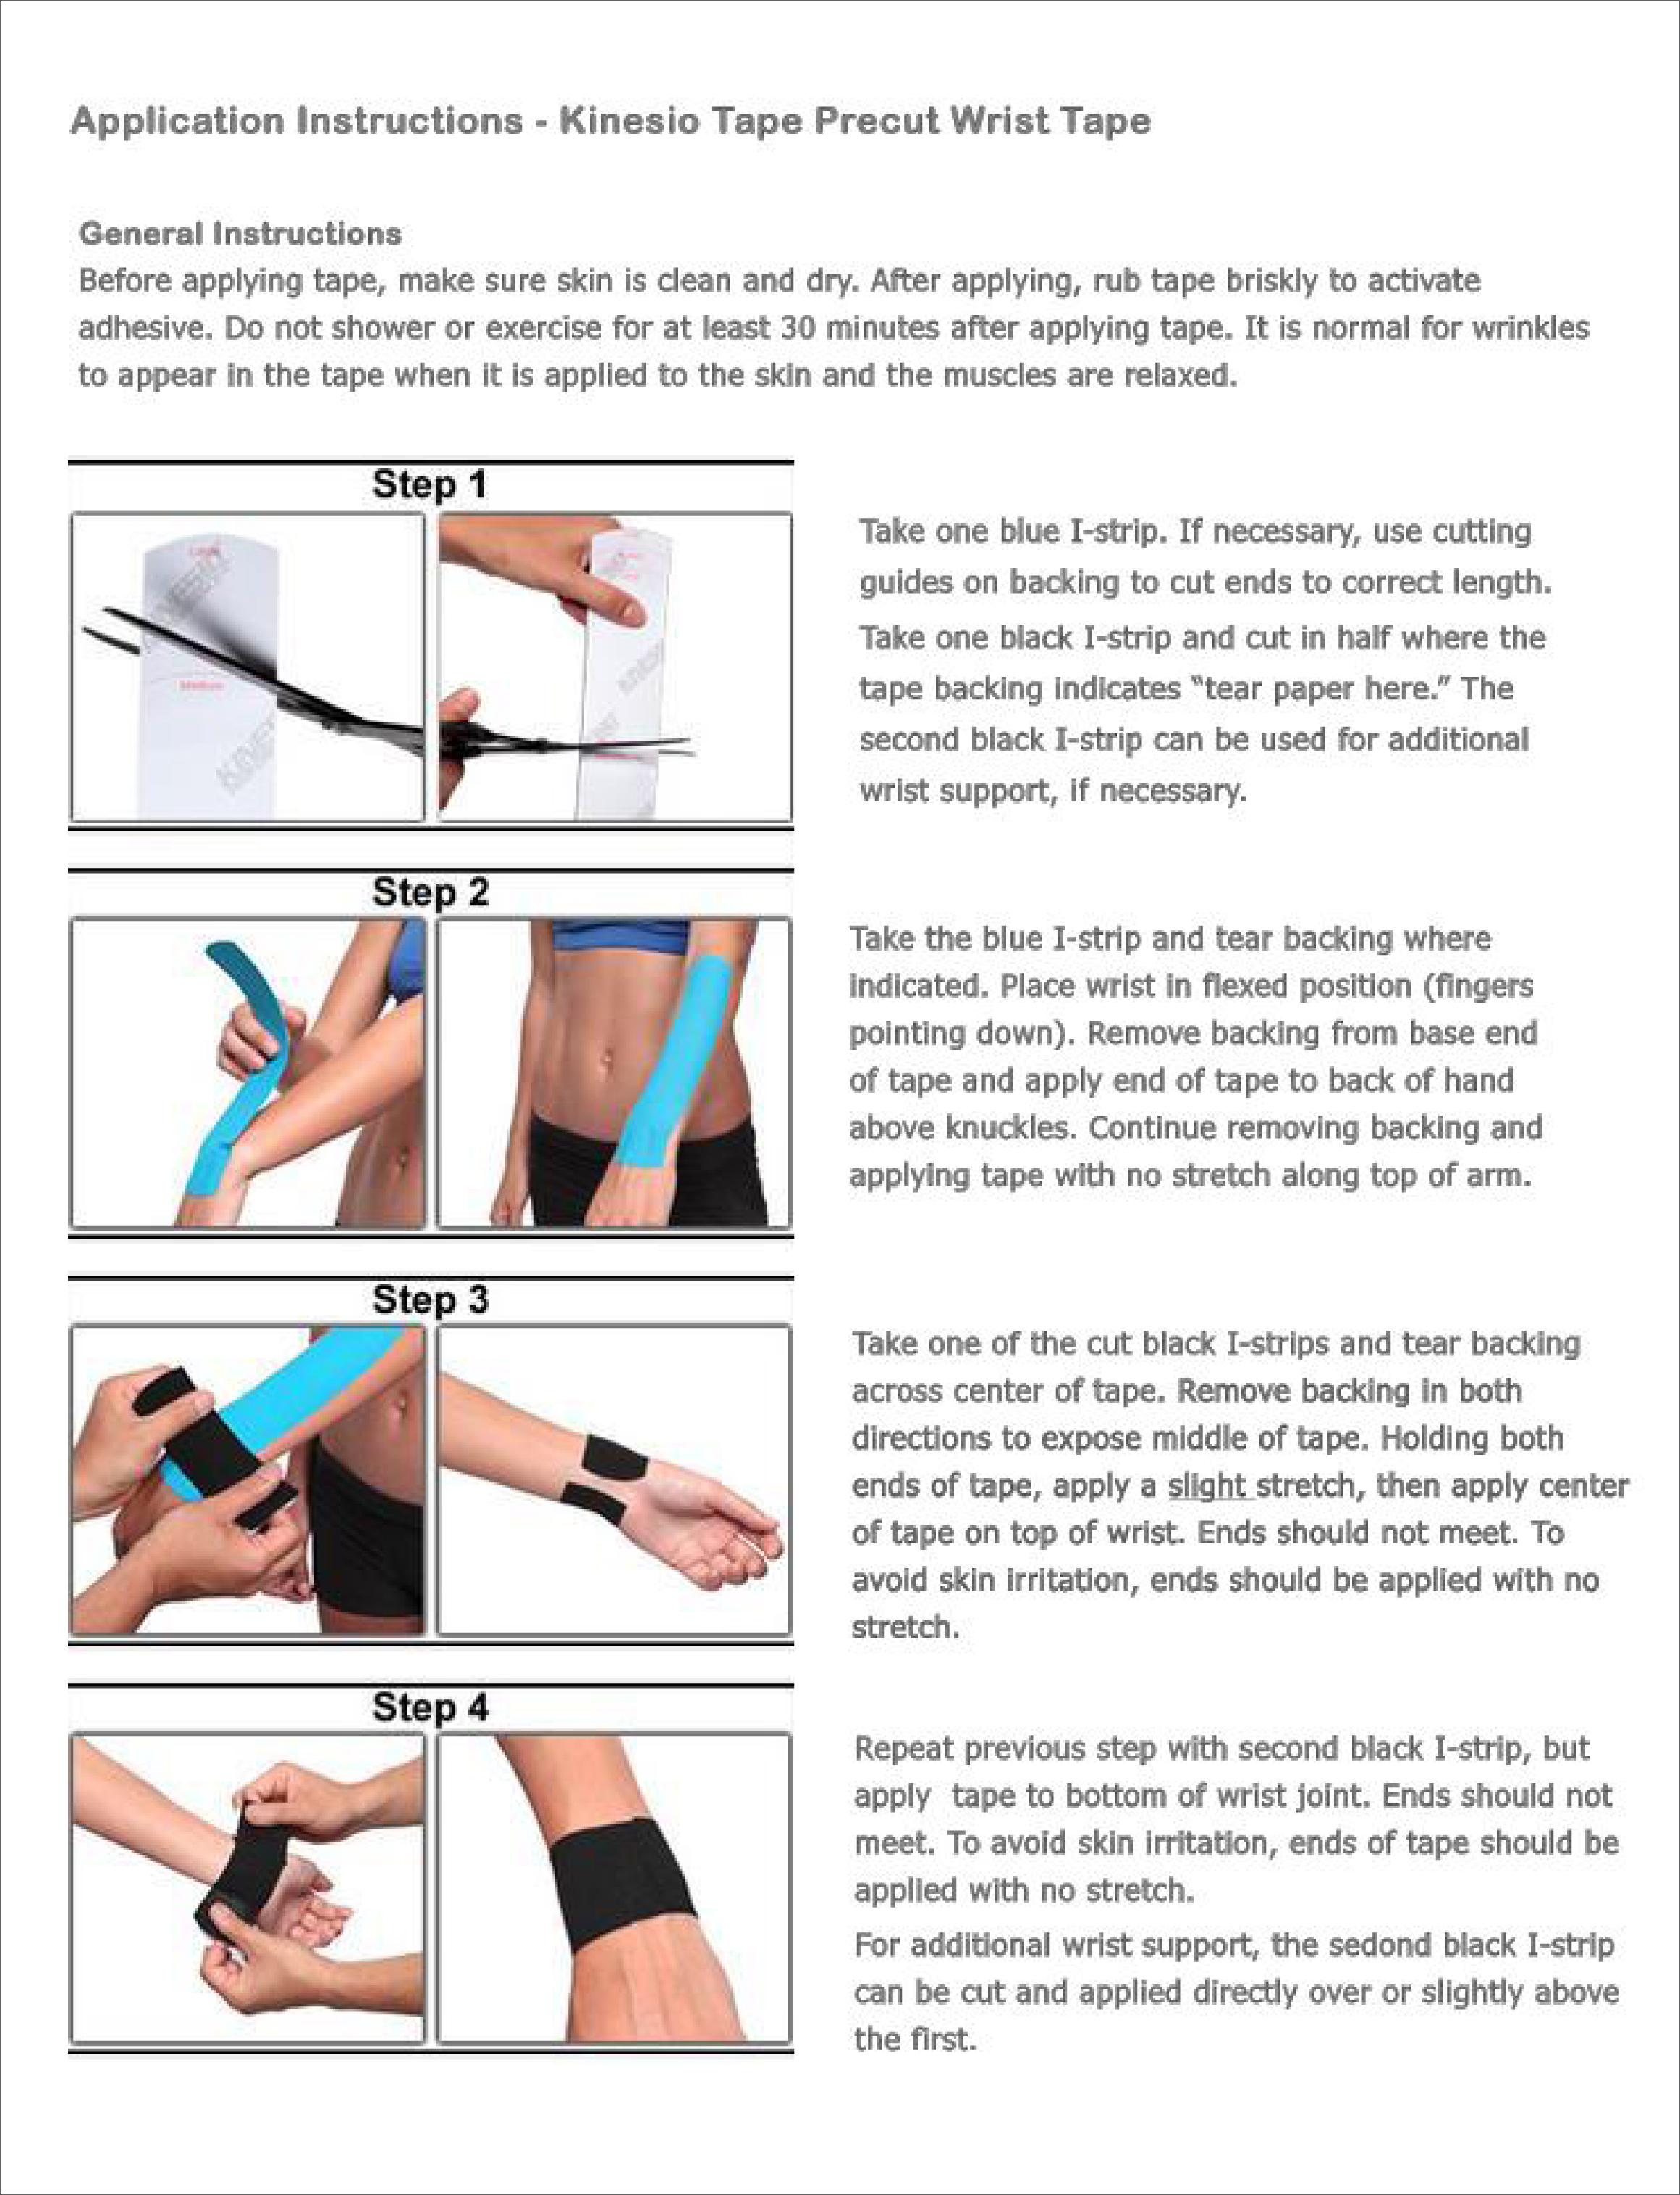 kinesio-instructions-precut-wrist